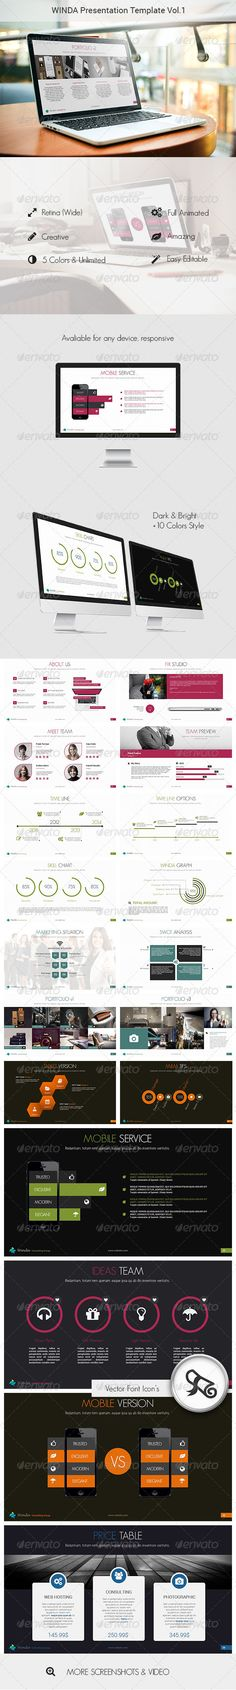 3D Paper Infographic Powerpoint Template (Powerpoint Templates ...